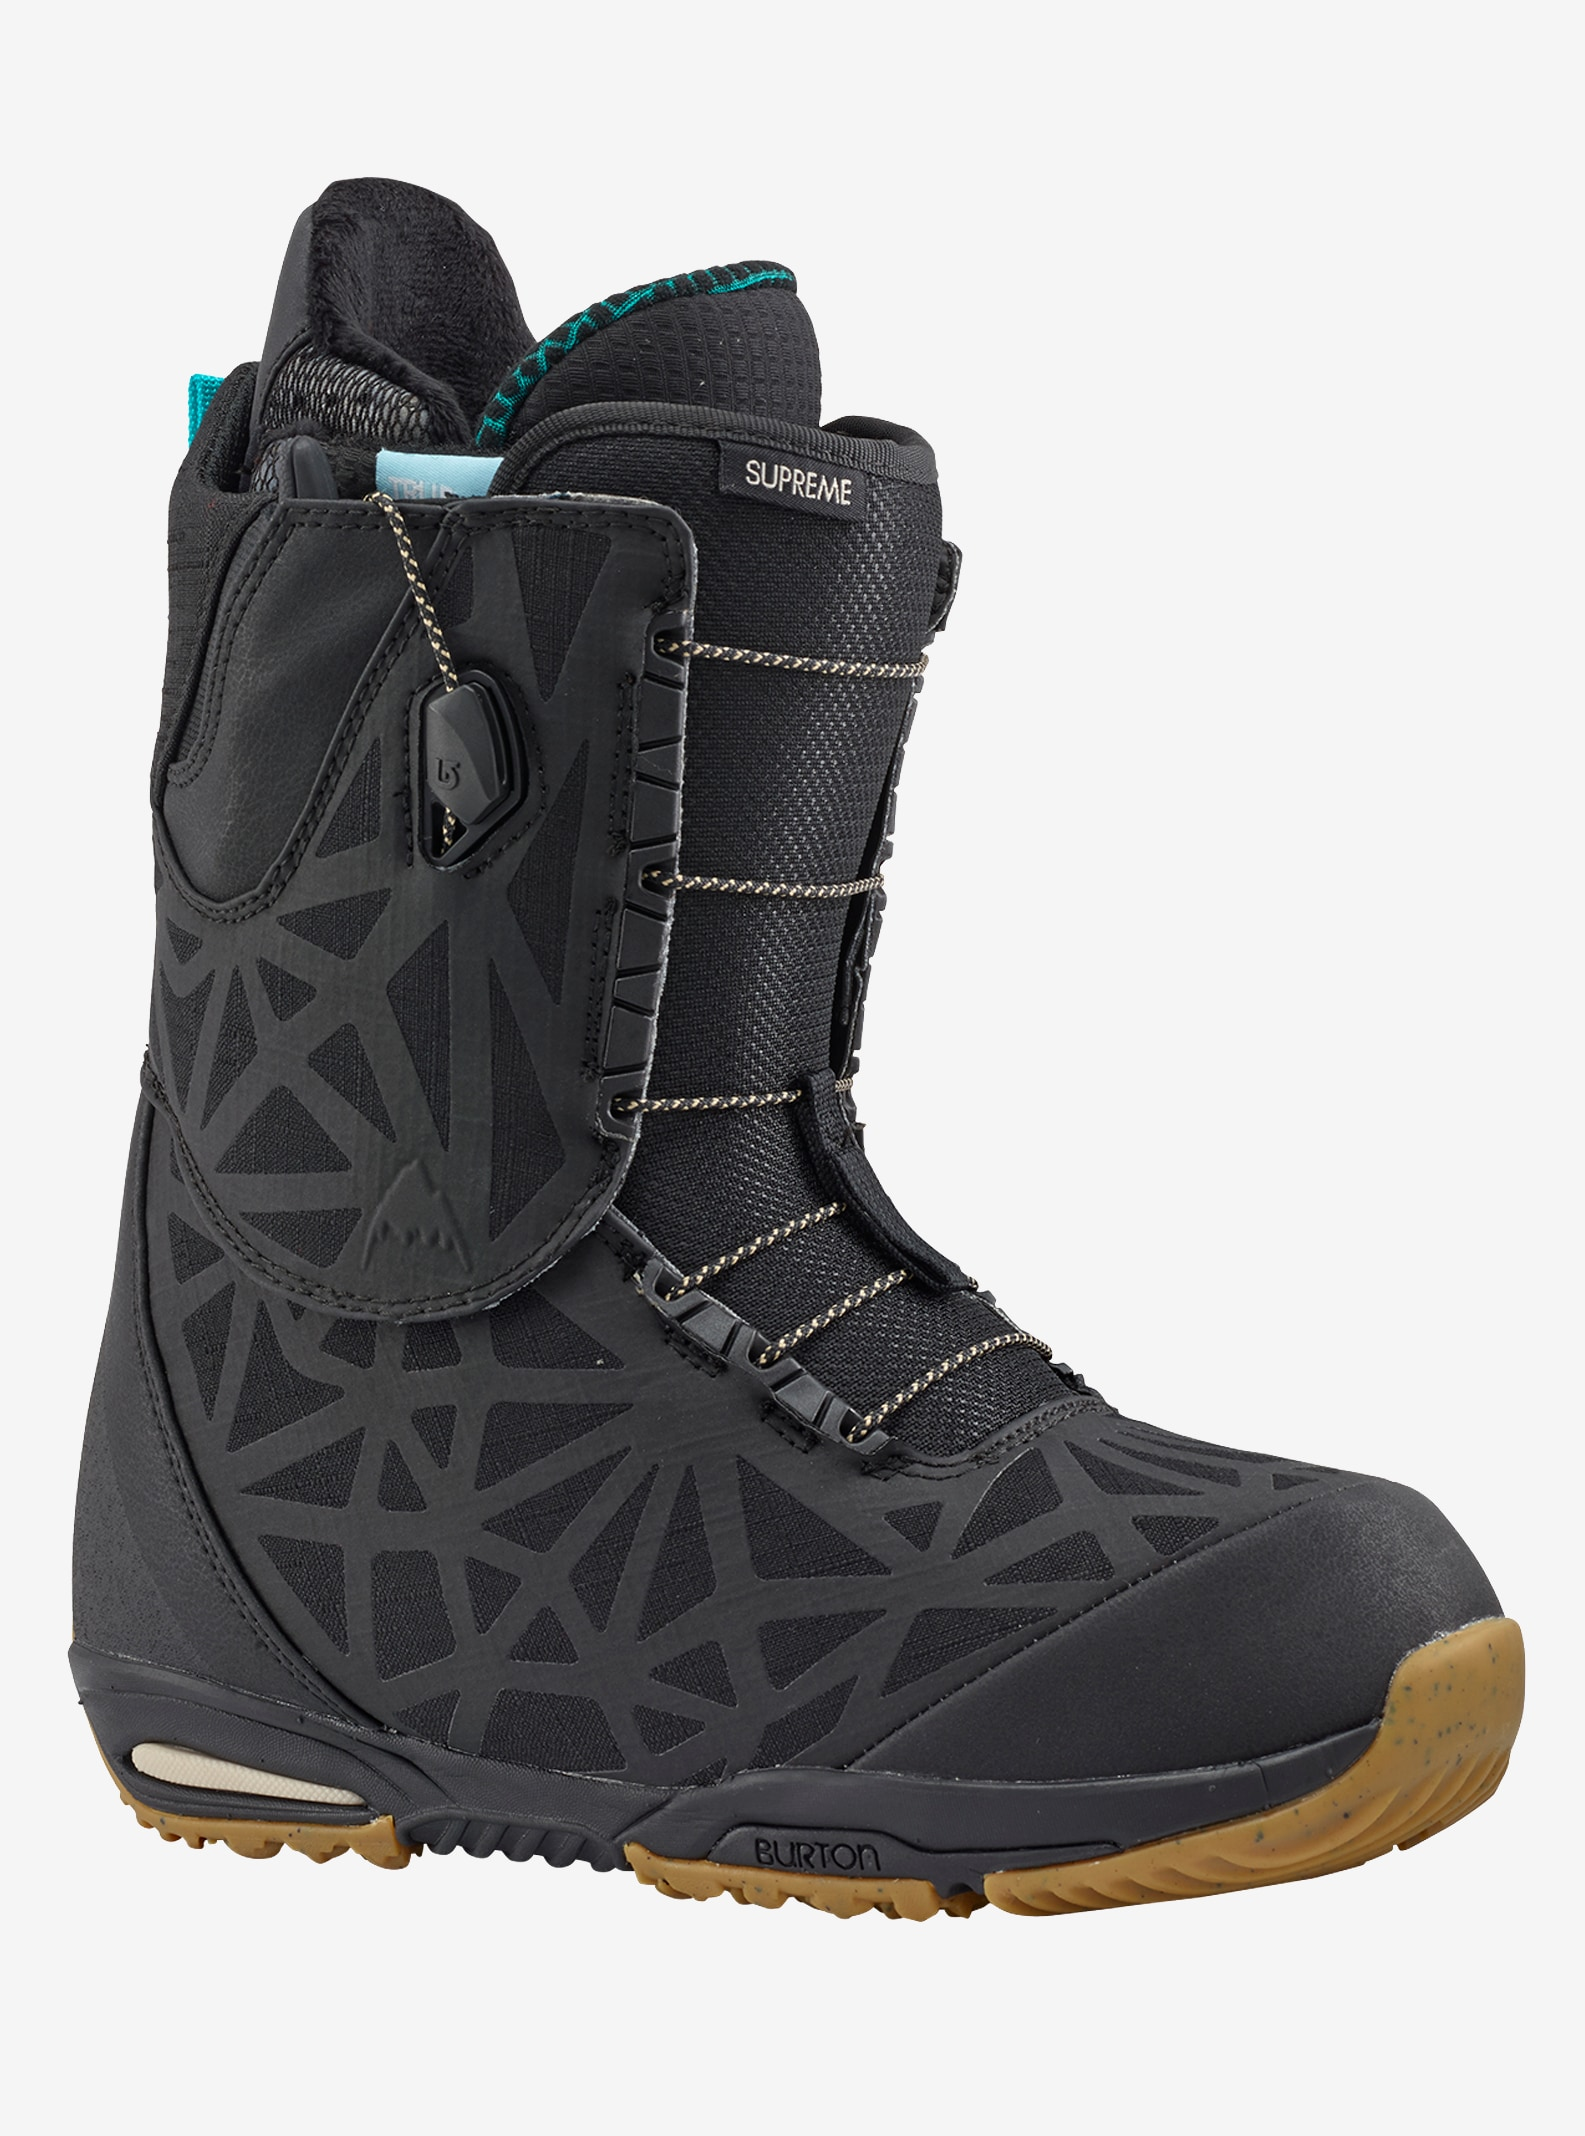 Women's Burton Supreme Snowboard Boot shown in Black